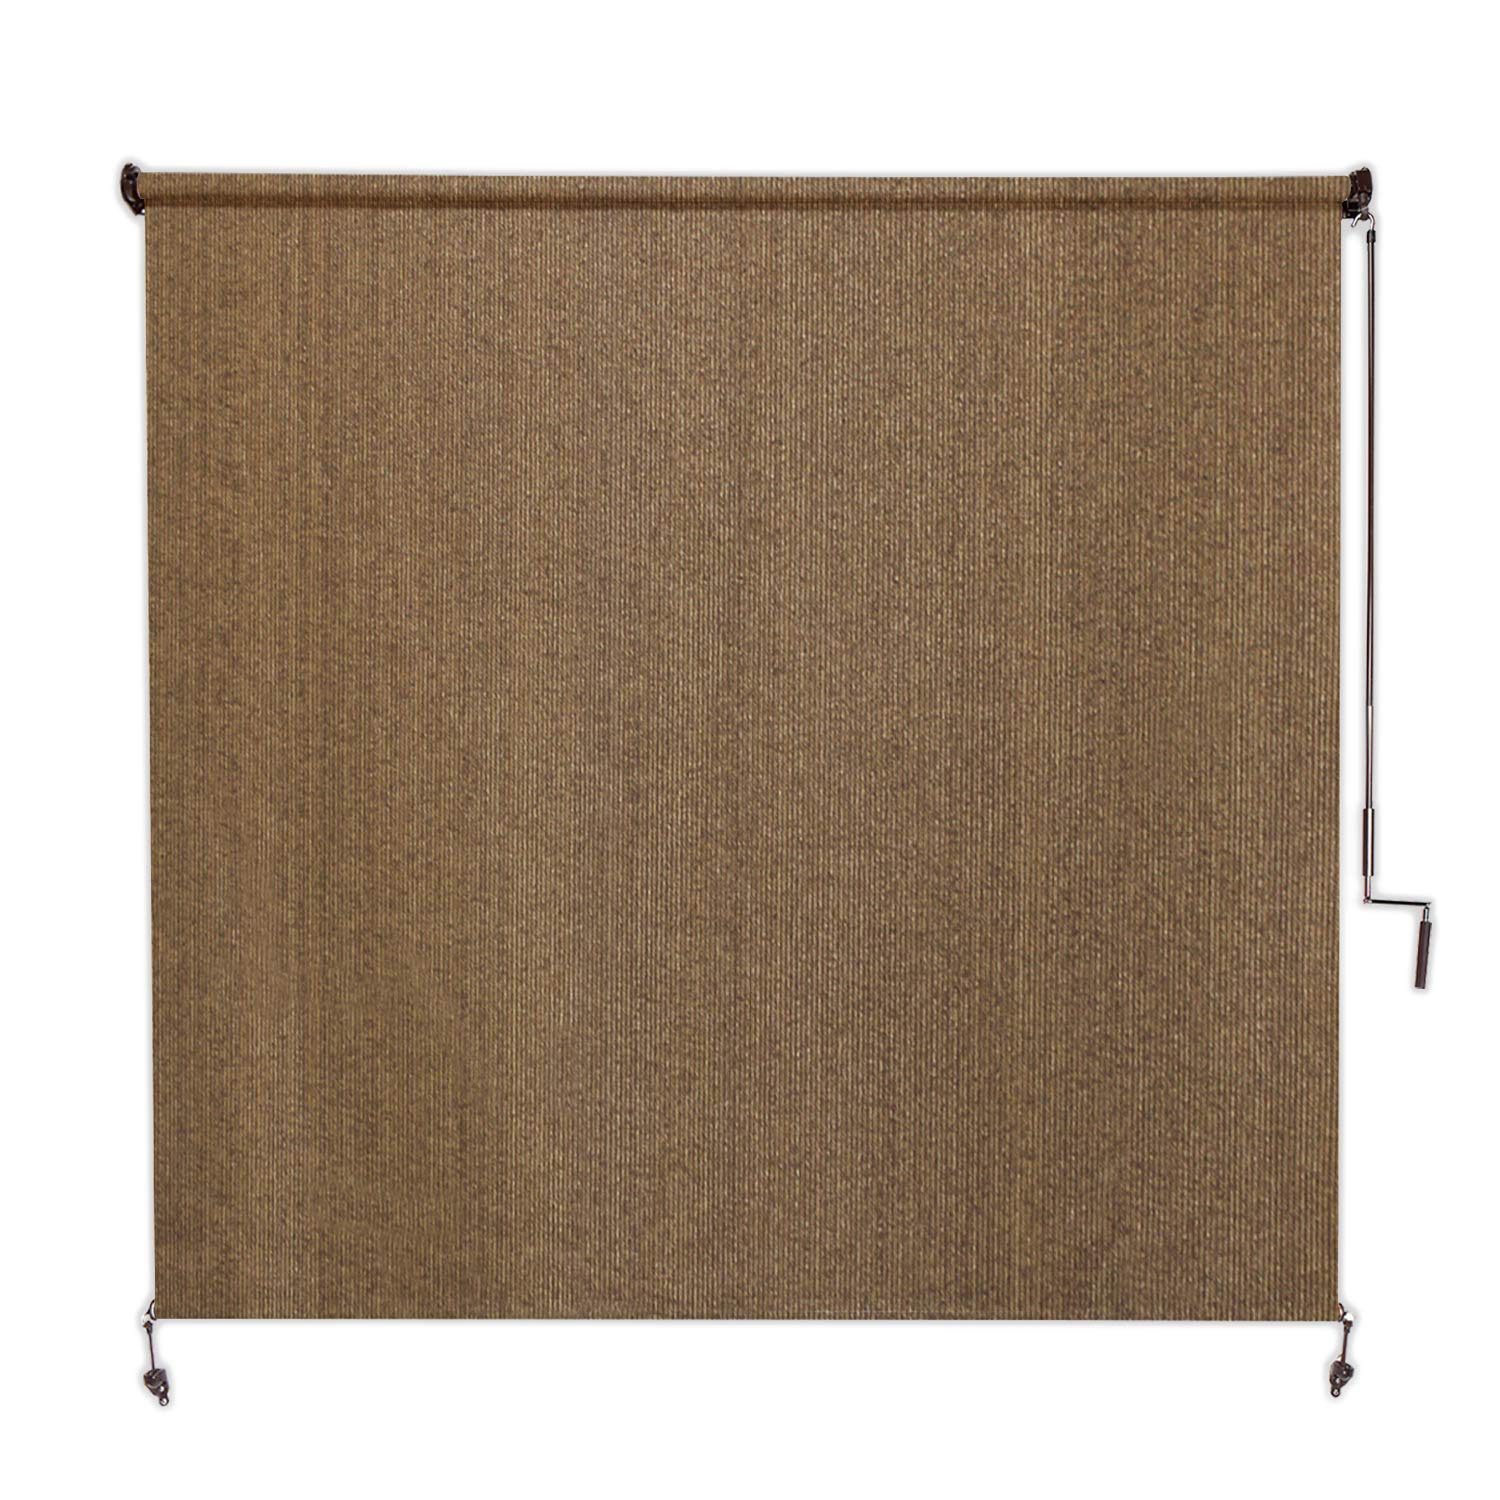 Coolaroo Exterior Roller Shade, Cordless Roller Shade with 95% UV Protection, No Valance, (8' W X 8' L), Walnut